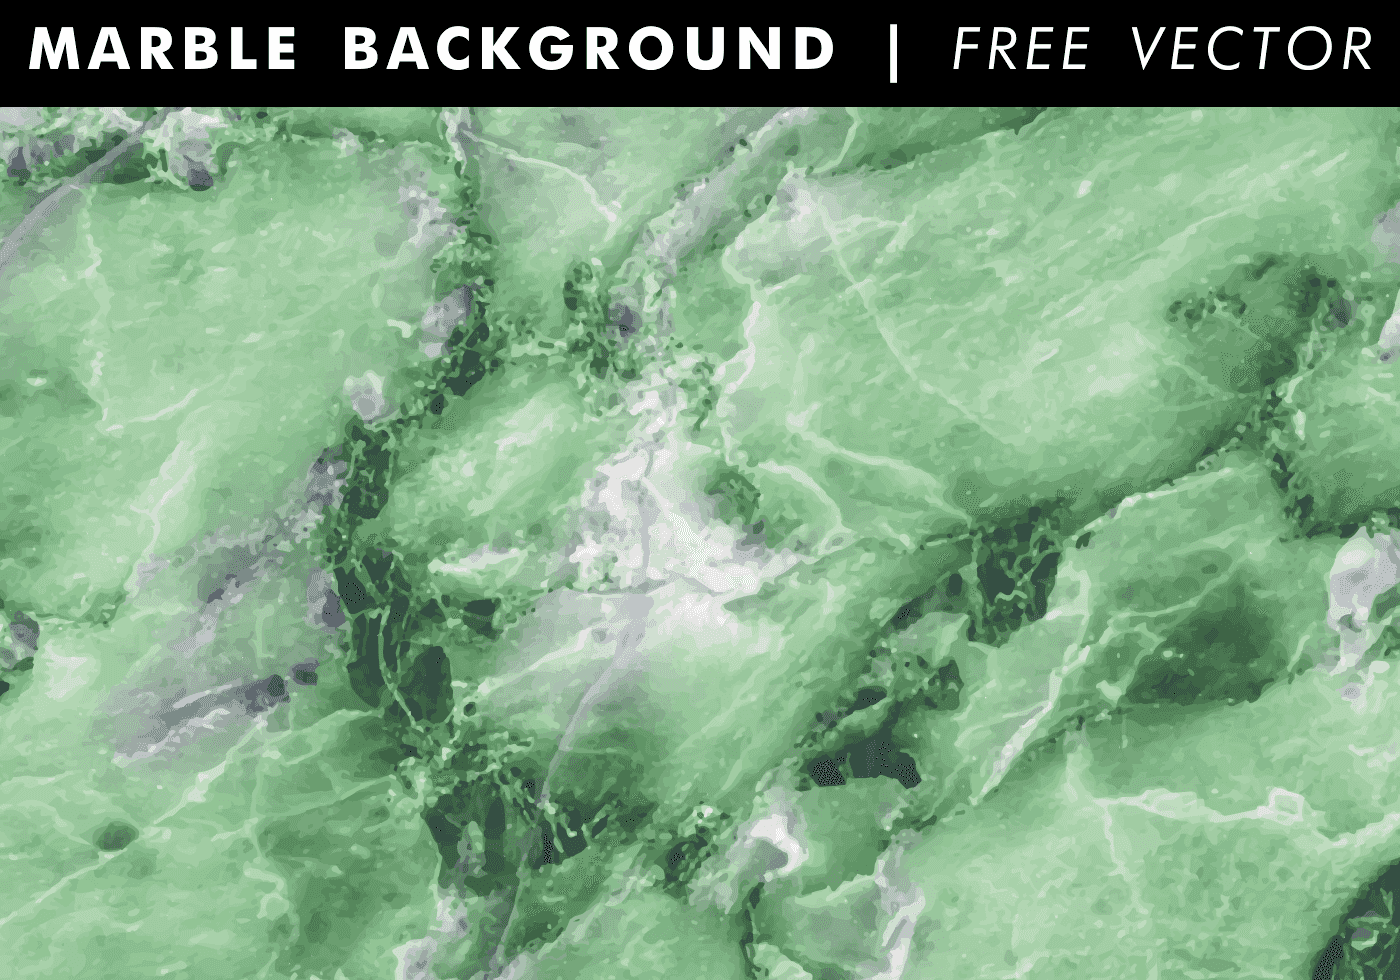 Marble Background Free Vector Download Free Vector Art